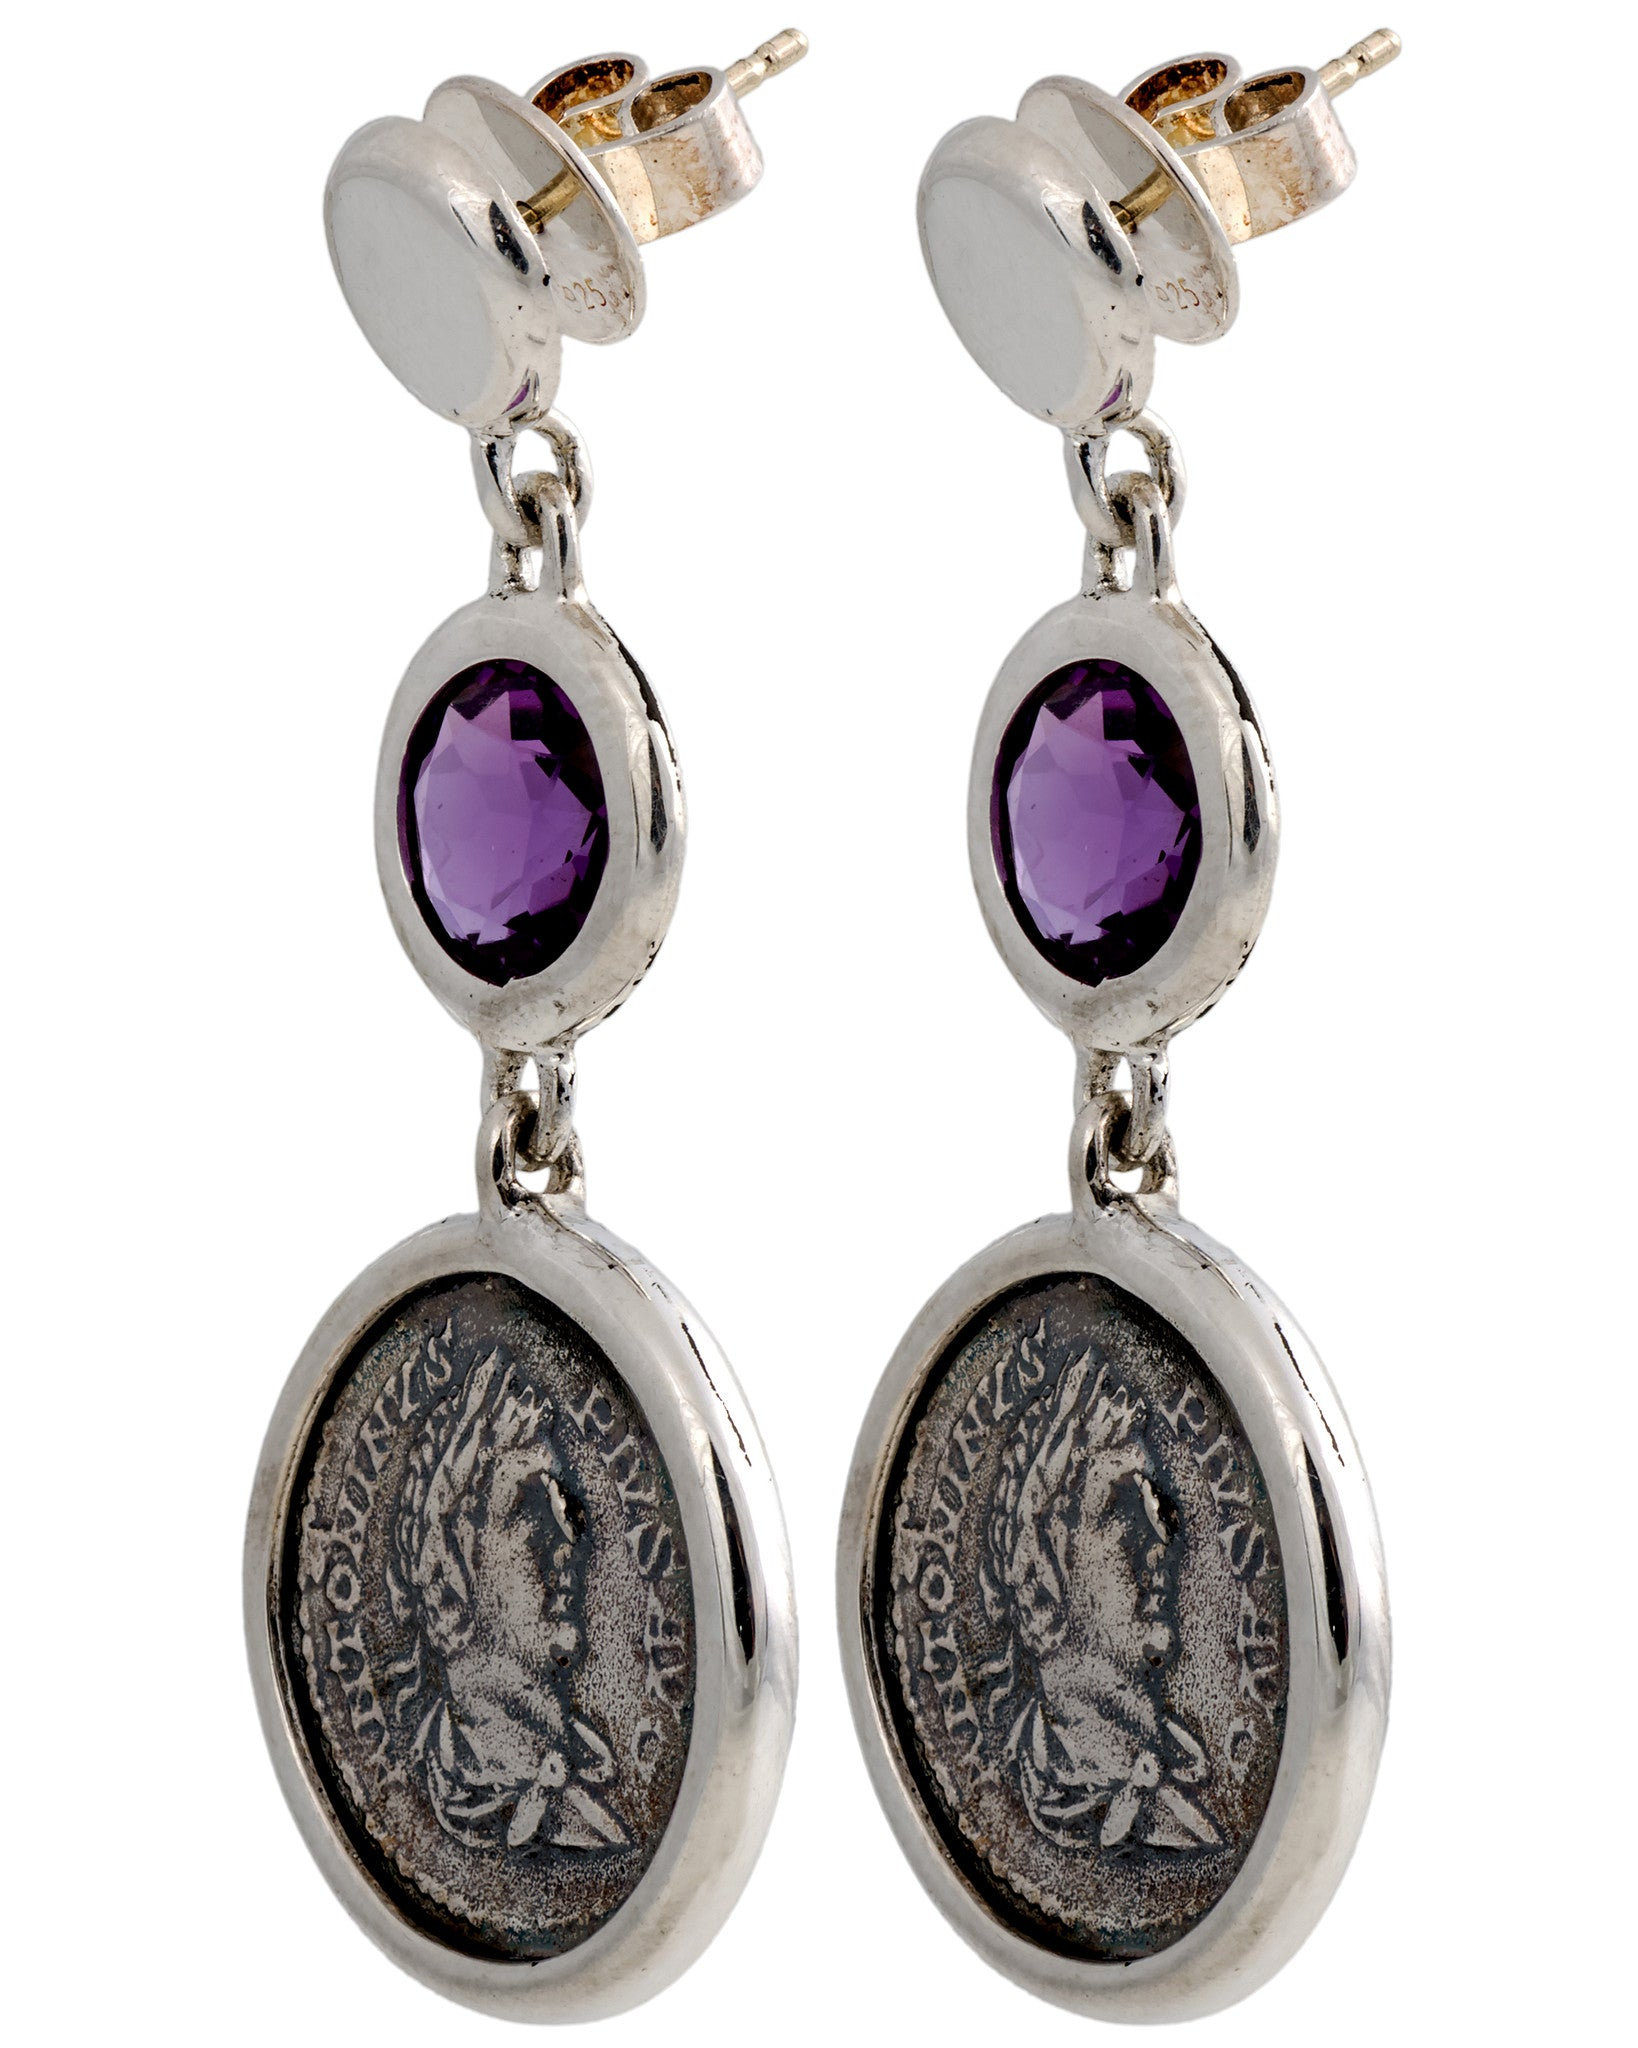 Legacy Vivace Sterling Silver Earrings w/ Medium Antique Pius Coin and Amethyst Stone (3.10 ct.) - Chain Length: 34 in